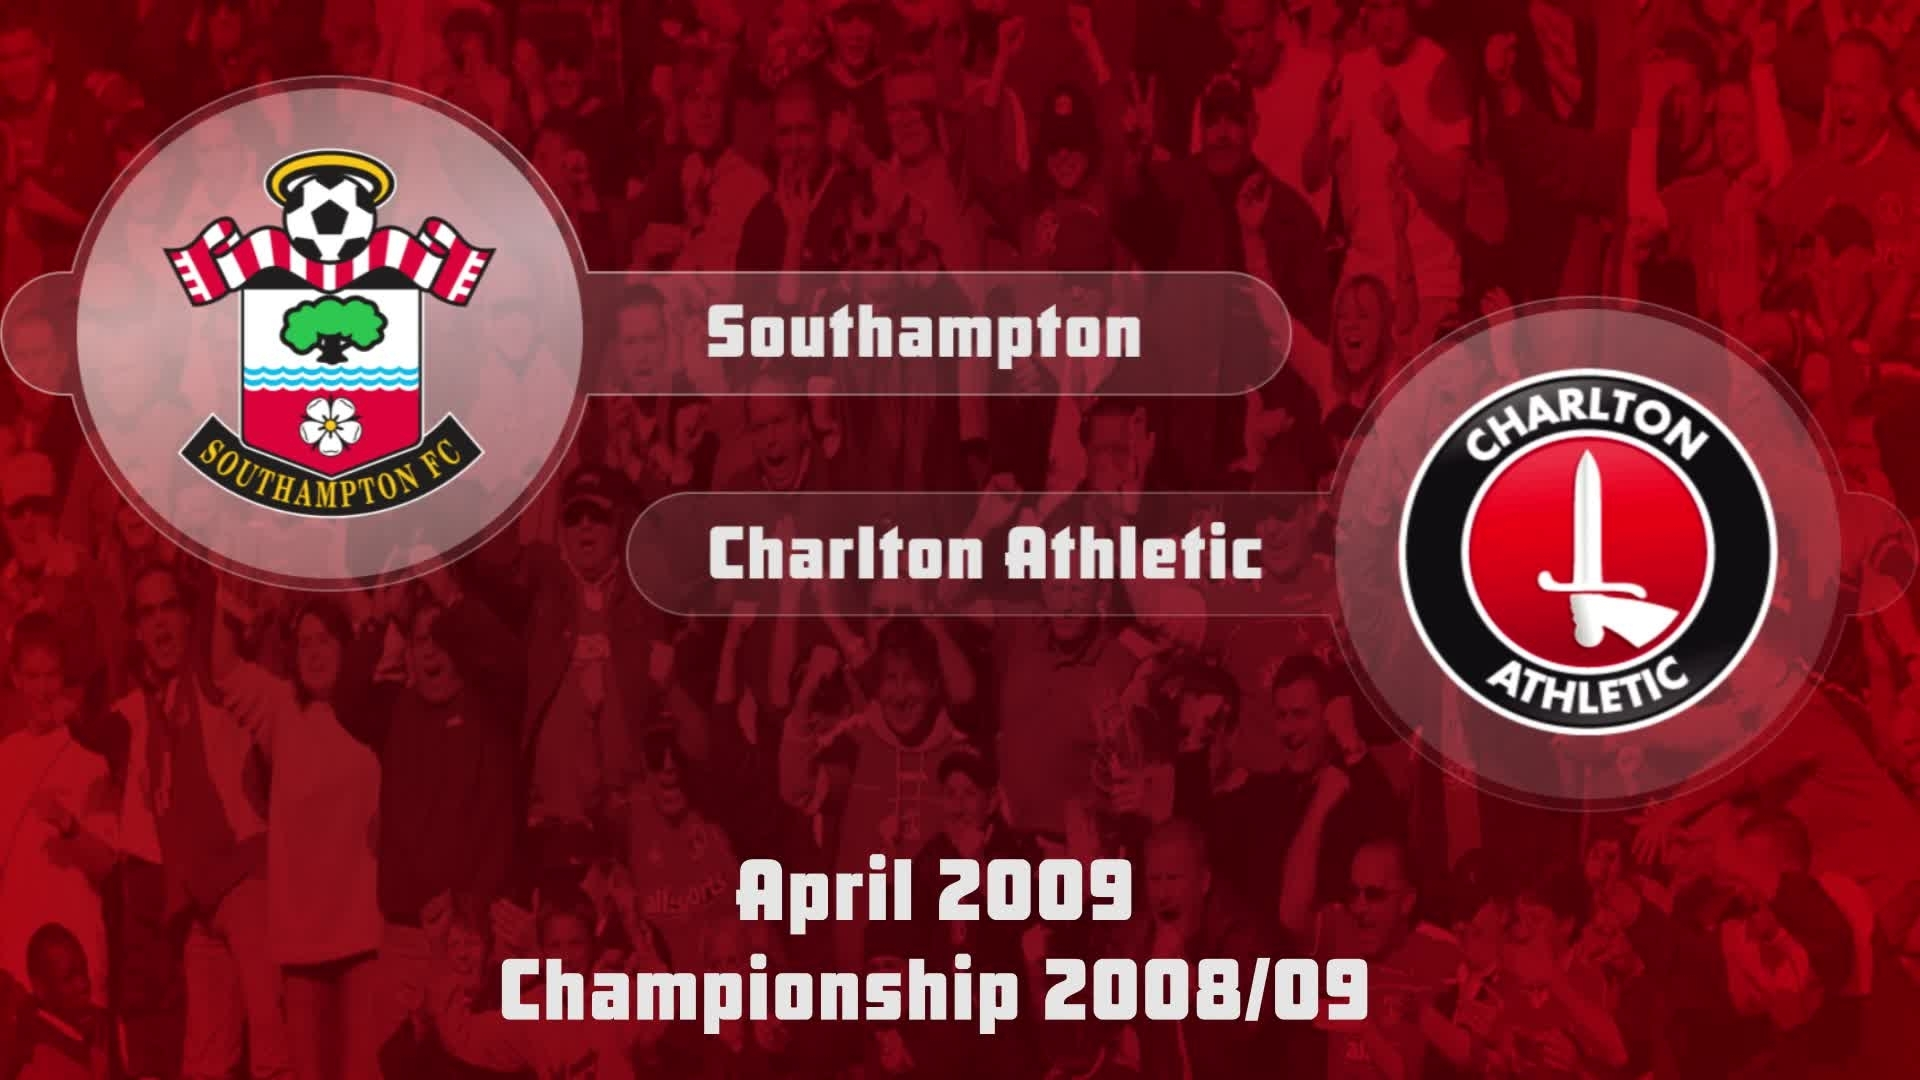 44 HIGHLIGHTS | Southampton 2 Charlton 3 (April 2009)